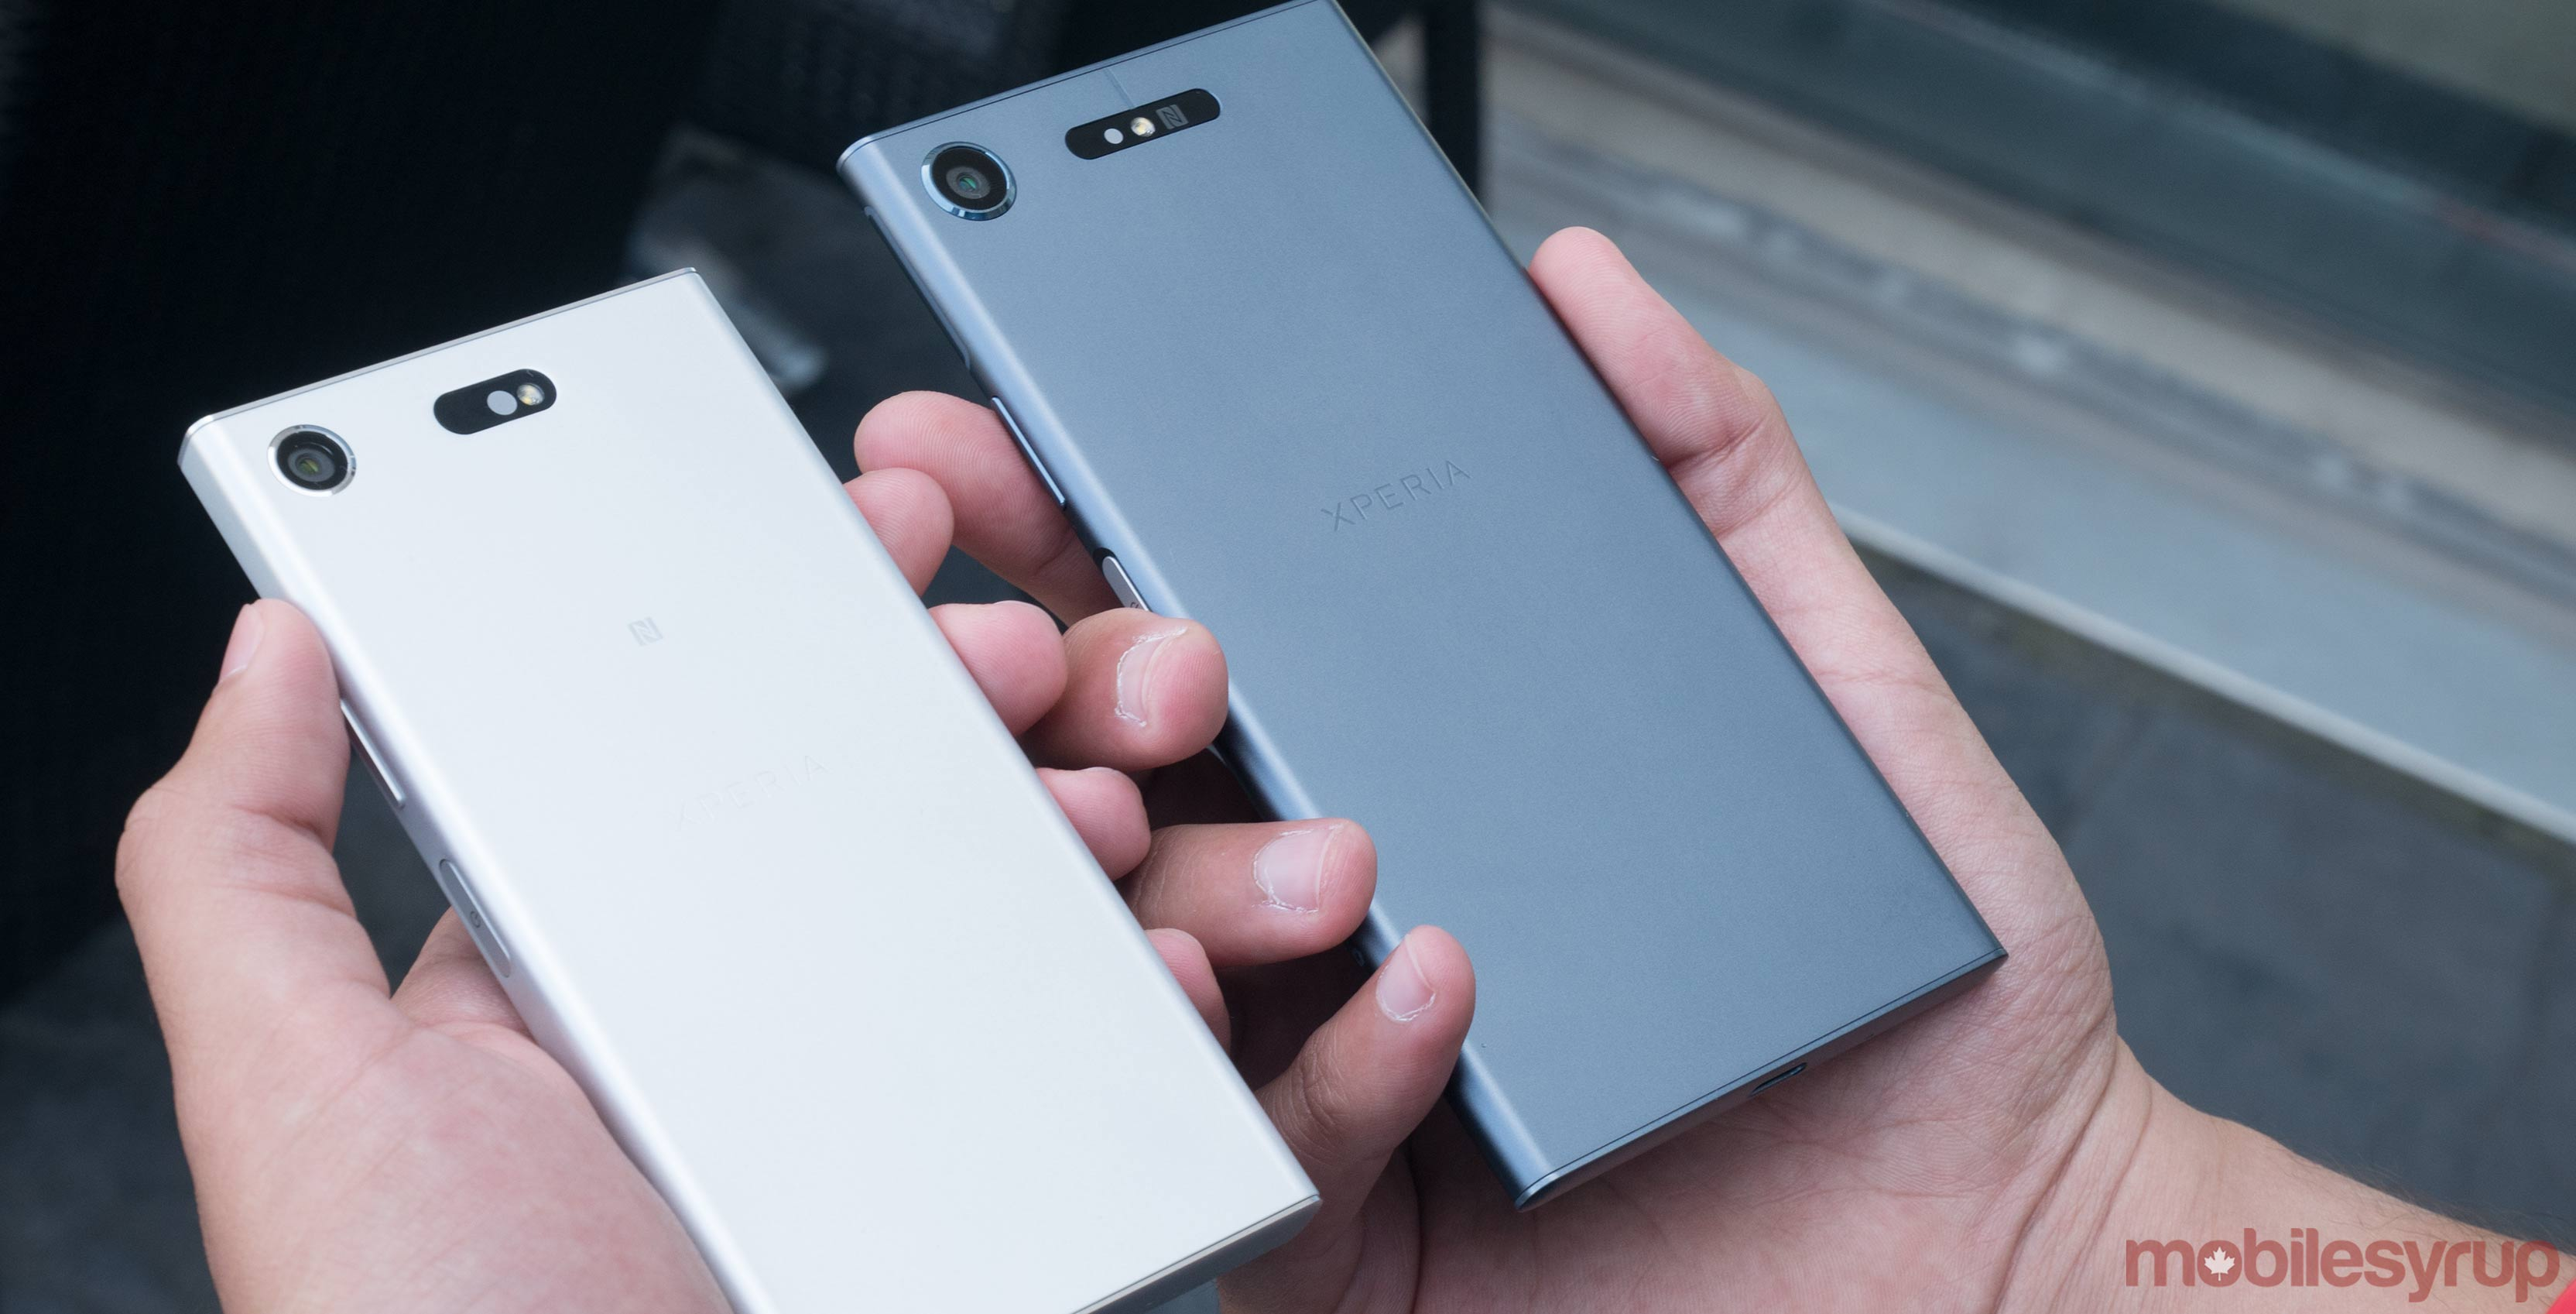 Sony Xperia XZ1 and XZ1 Compact side by side